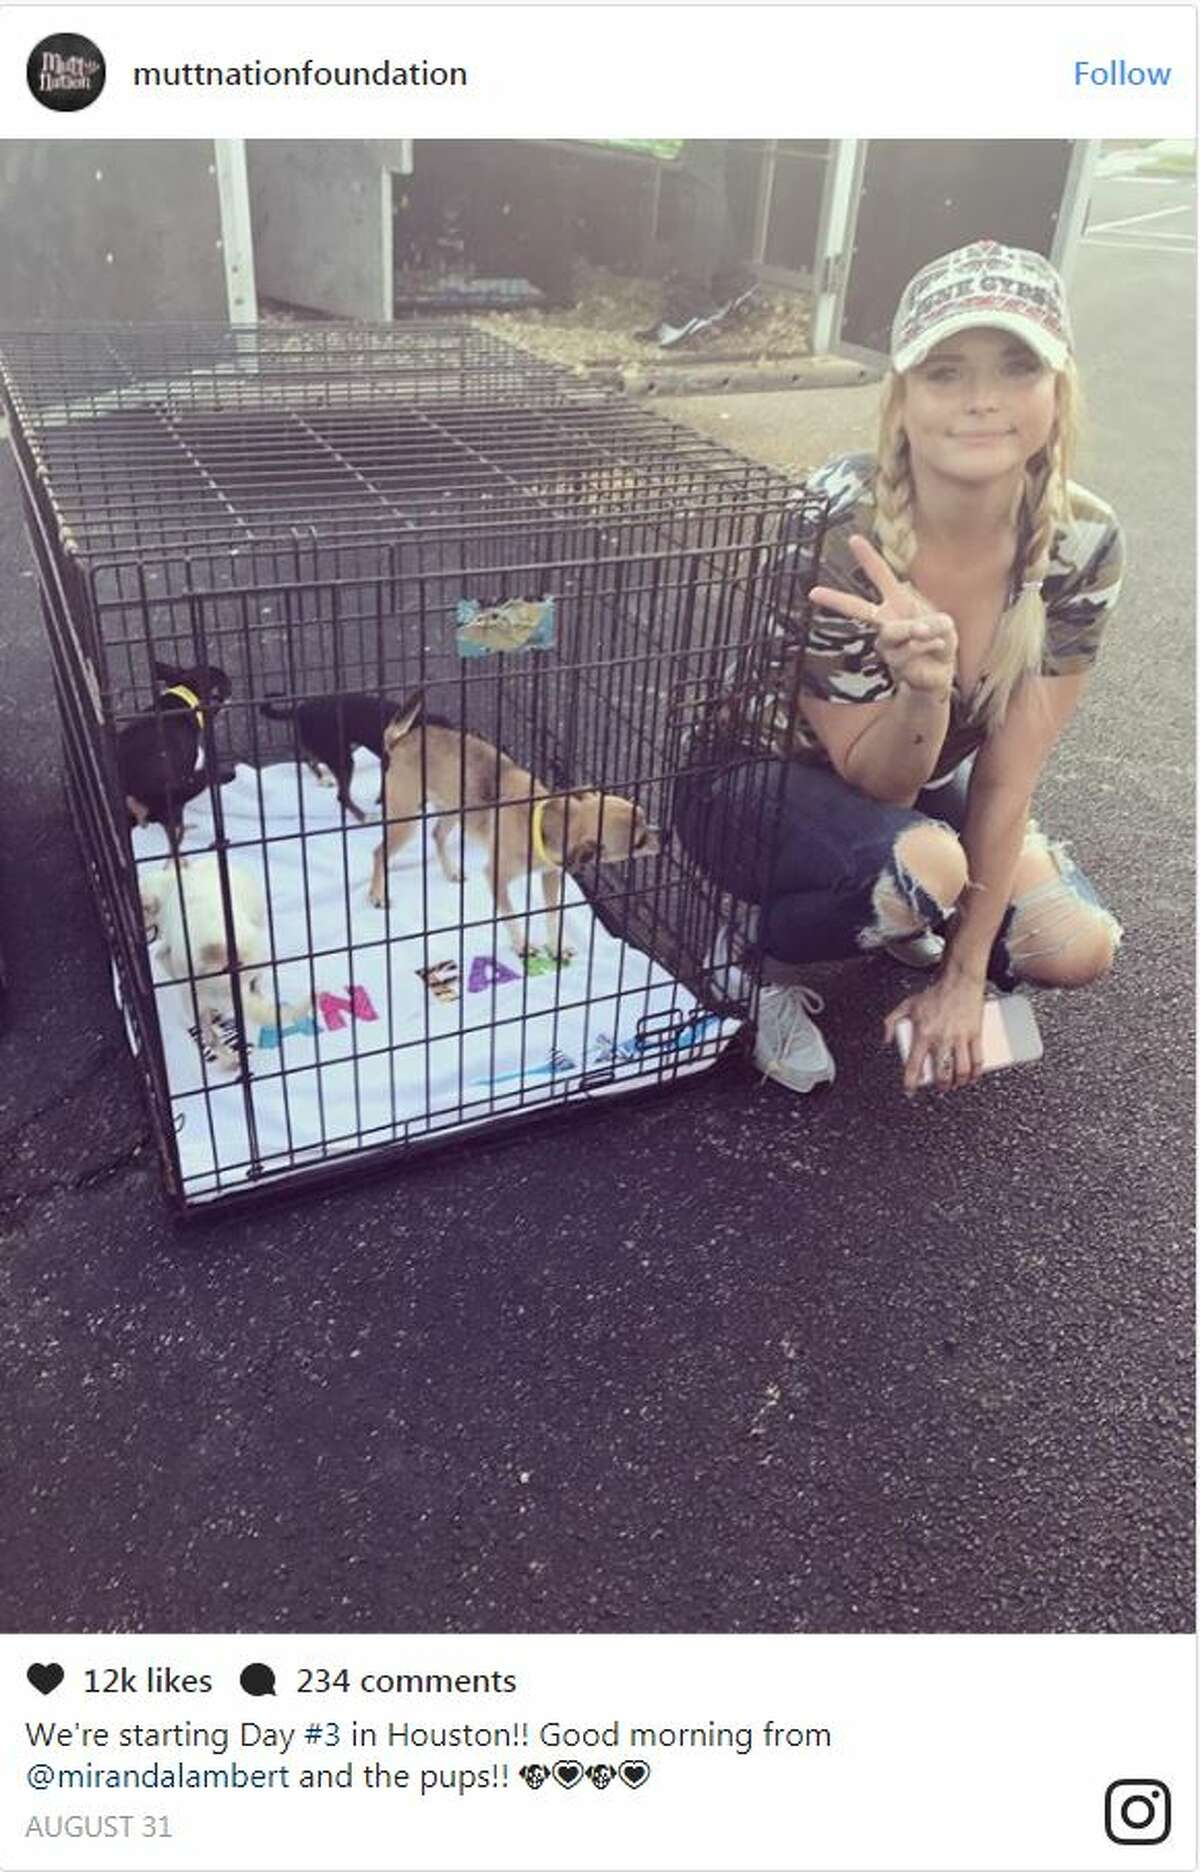 Miranda Lambert and her MuttNation Foundation came to Houston to rescue more than 200 dogs. The singer even took pets home to relieve crowded shelters.